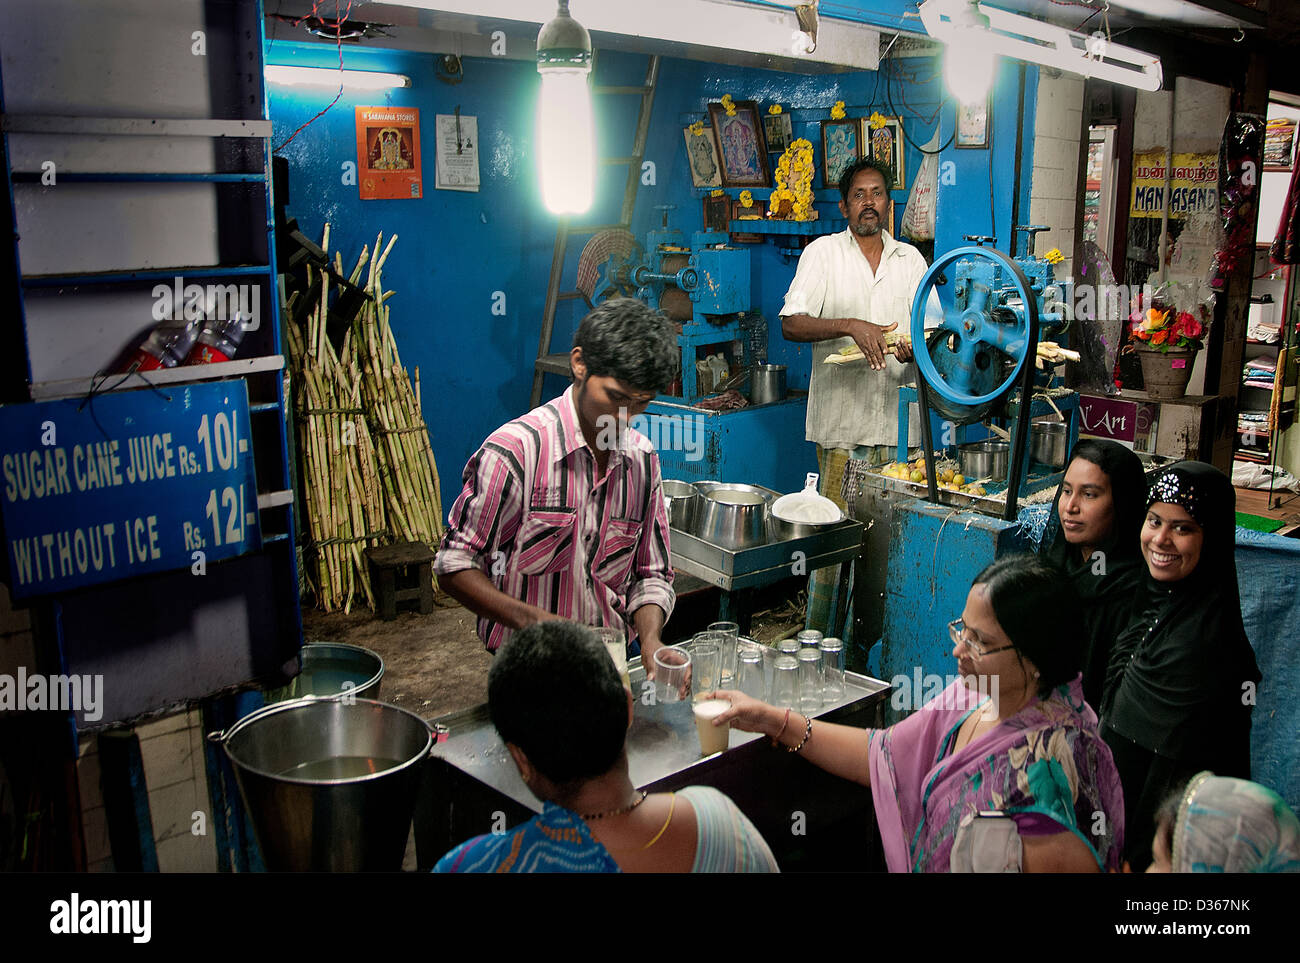 Bazaar center old market Chennai ( Madras ) India Tamil Nadu vendor sugarcane juice popular drink in India - Stock Image